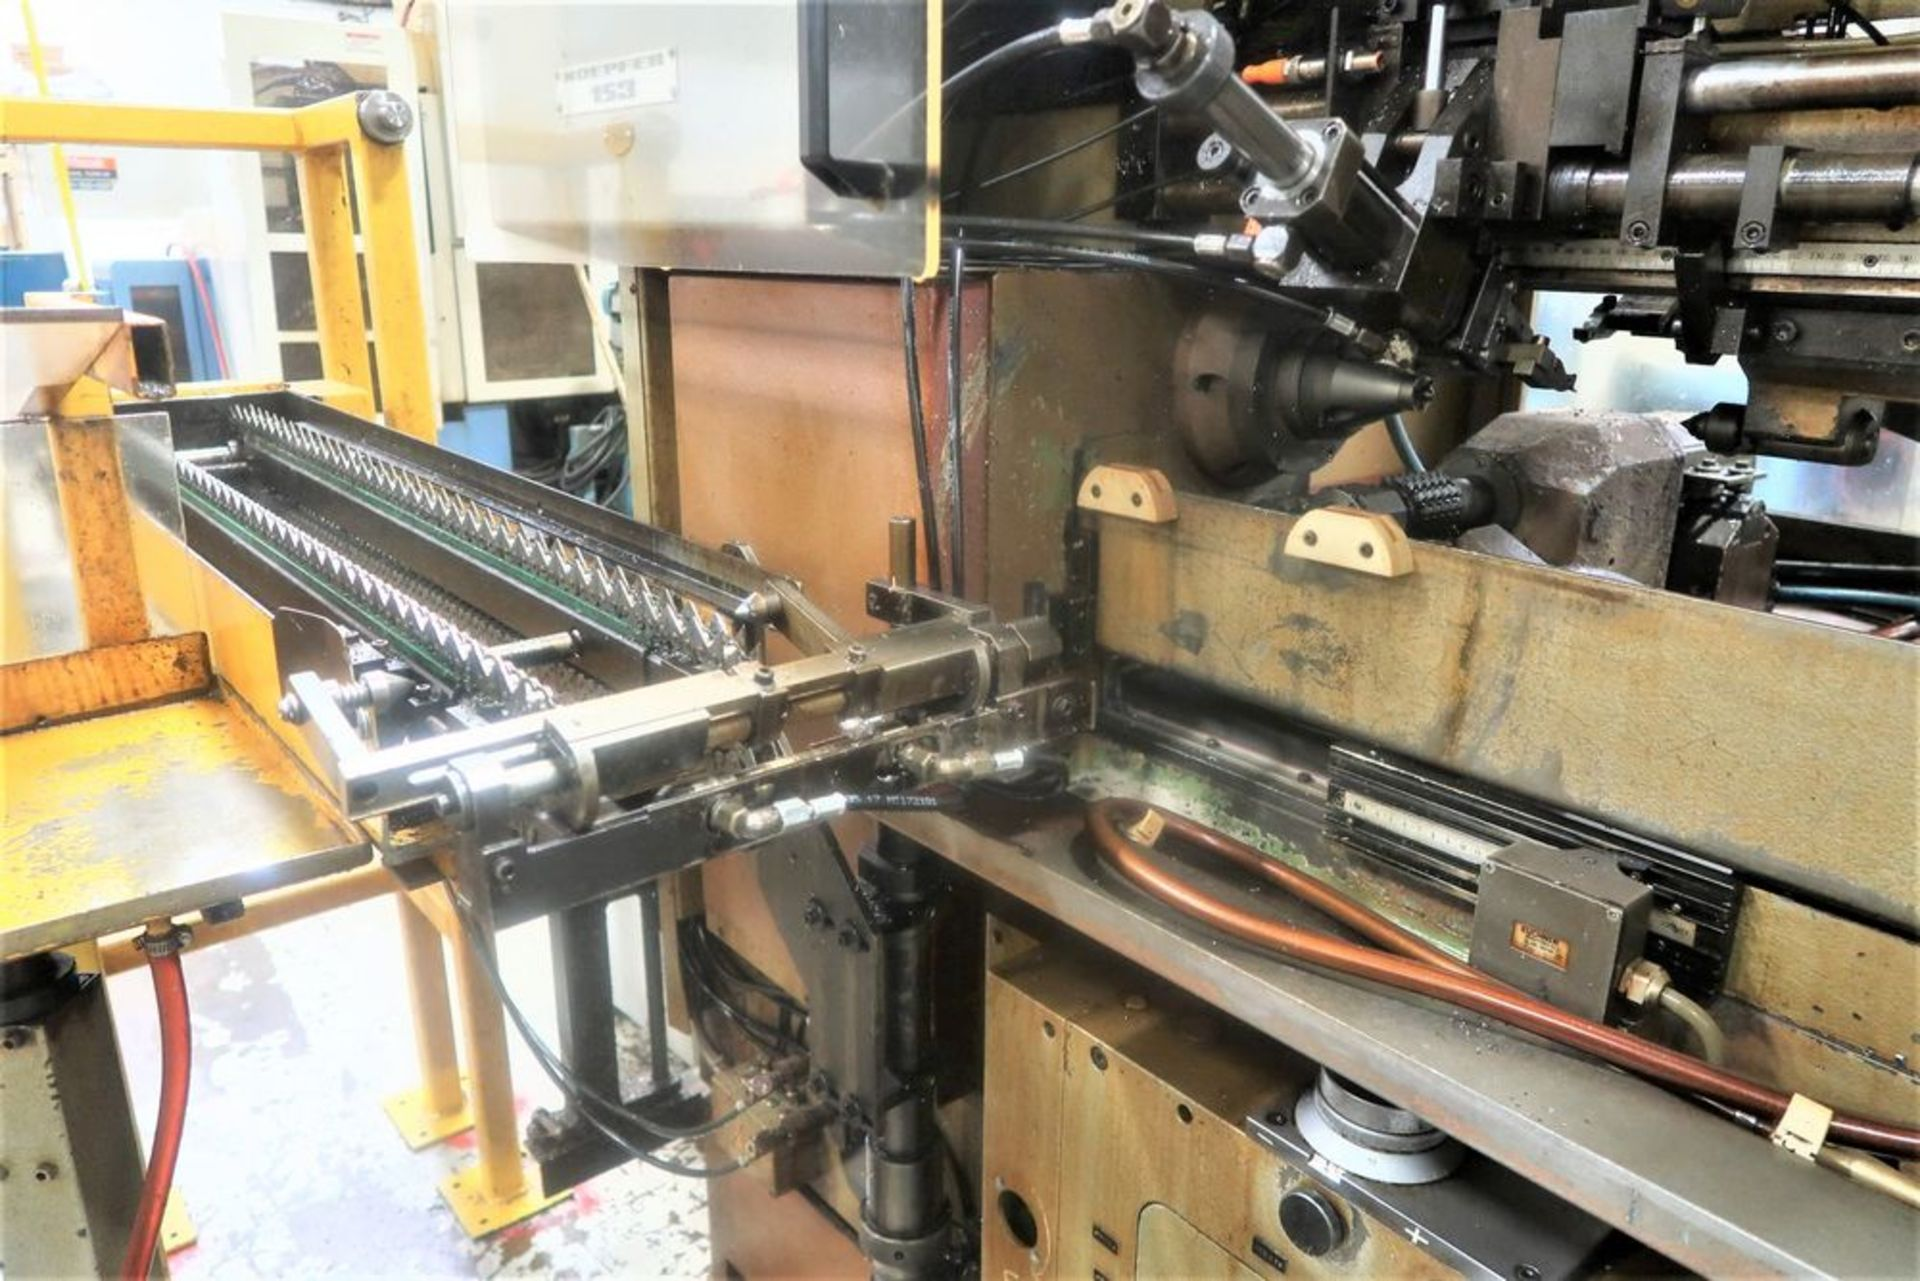 Koepfer 153B Gear Hobber w/Automatic Loading, S/N 153187 - Image 4 of 8